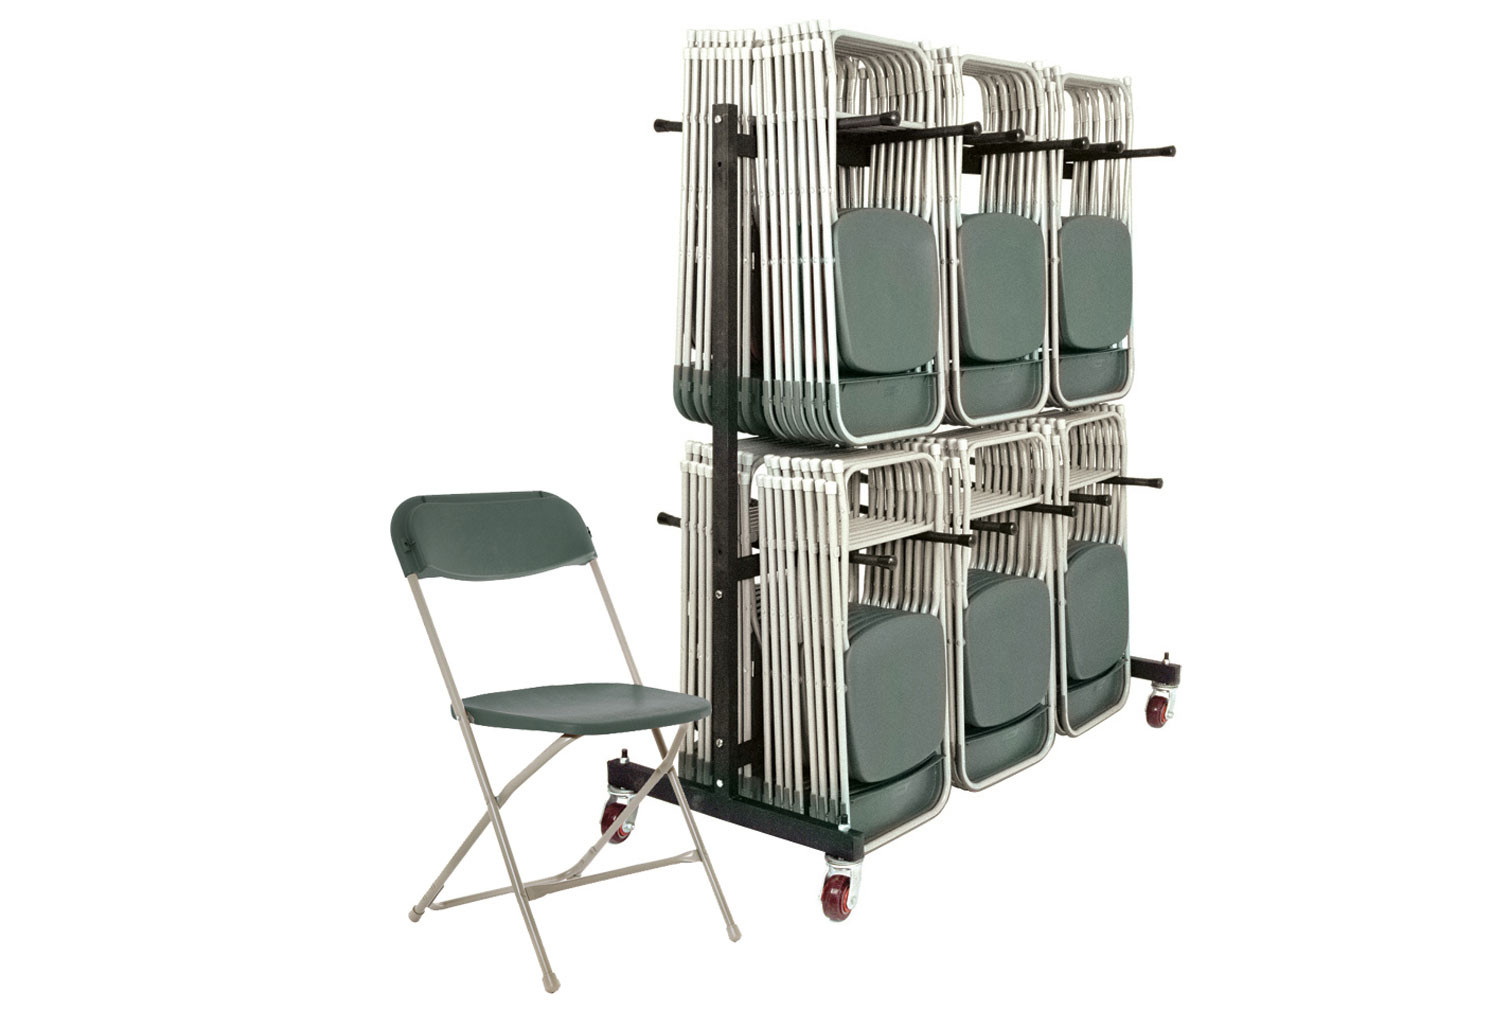 Classic Folding Chair Bundle Deal (168 Chairs & 1 High Trolley)